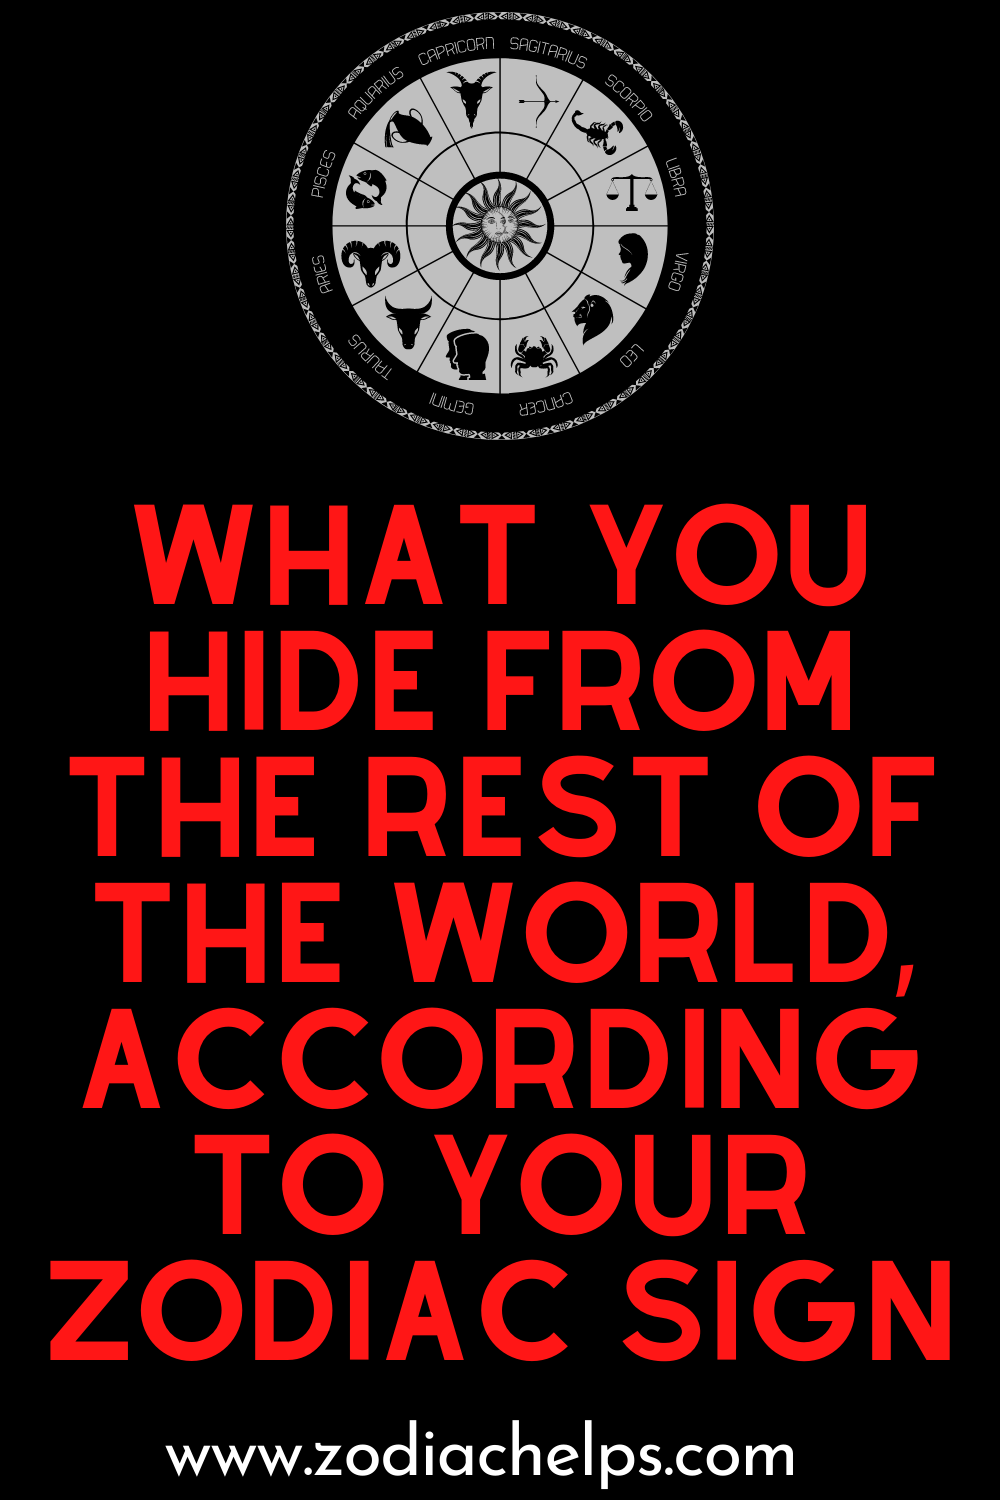 What you hide from the rest of the world, according to your zodiac sign